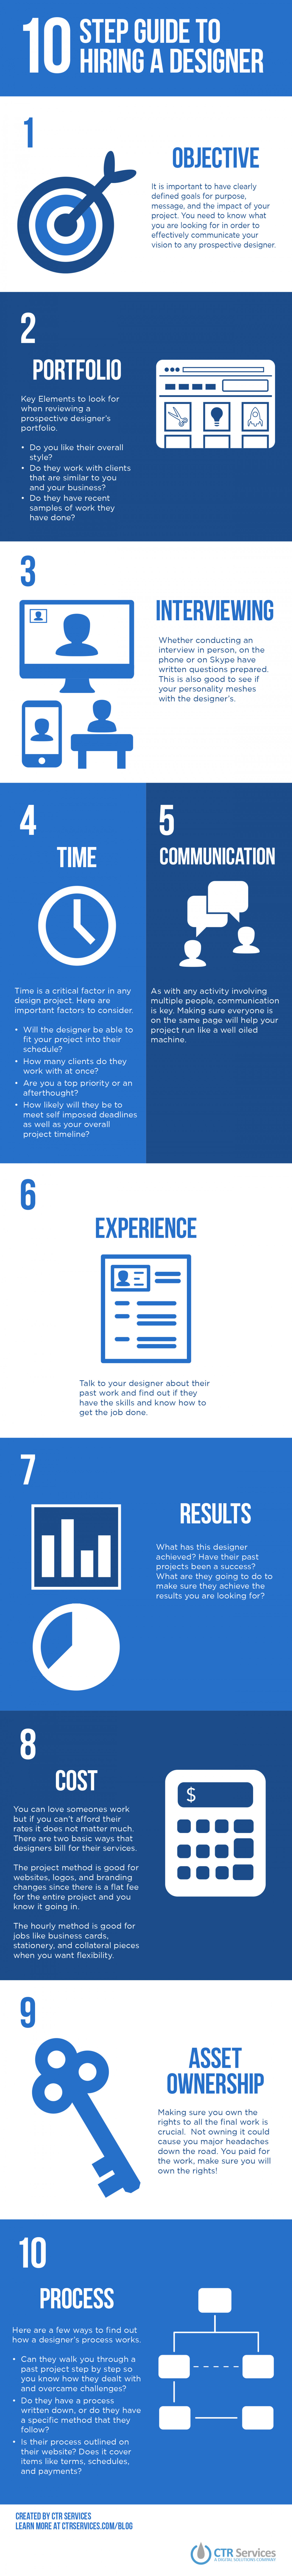 10 Step Guide to Hiring a Designer Infographic